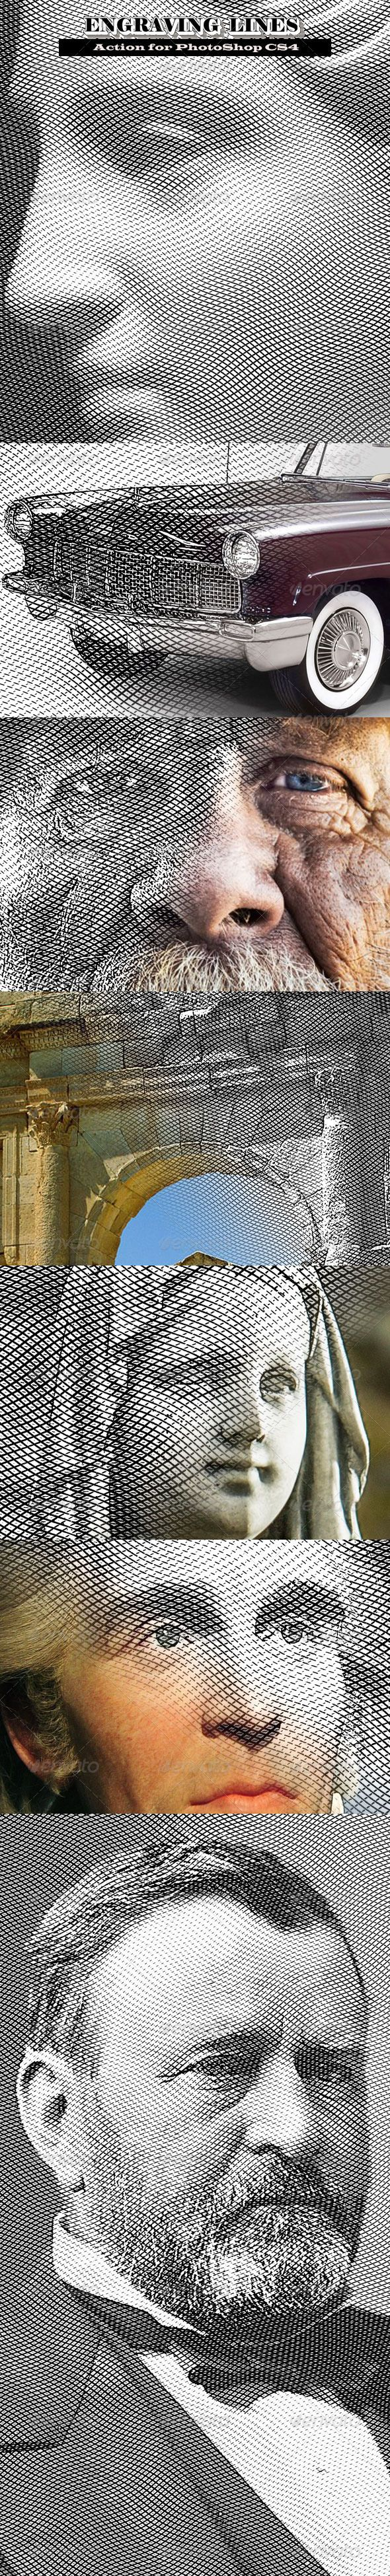 Engraving Lines #GraphicRiver Hi, dear colleagues! The Action for PhotoShop CS4 (or later): New way to convert any image into the engraving, Easily adjustment of the engrave image appearance, Please watch video to see how it works: I hope the action will be useful for you. Created: 9April13 Add-onFilesIncluded: LayeredPSD #PhotoshopATN MinimumAdobeCSVersion: CS4 Tags: blackandwhite #classic #engrave #engraving #graphic #line #portrait #retro #vintage